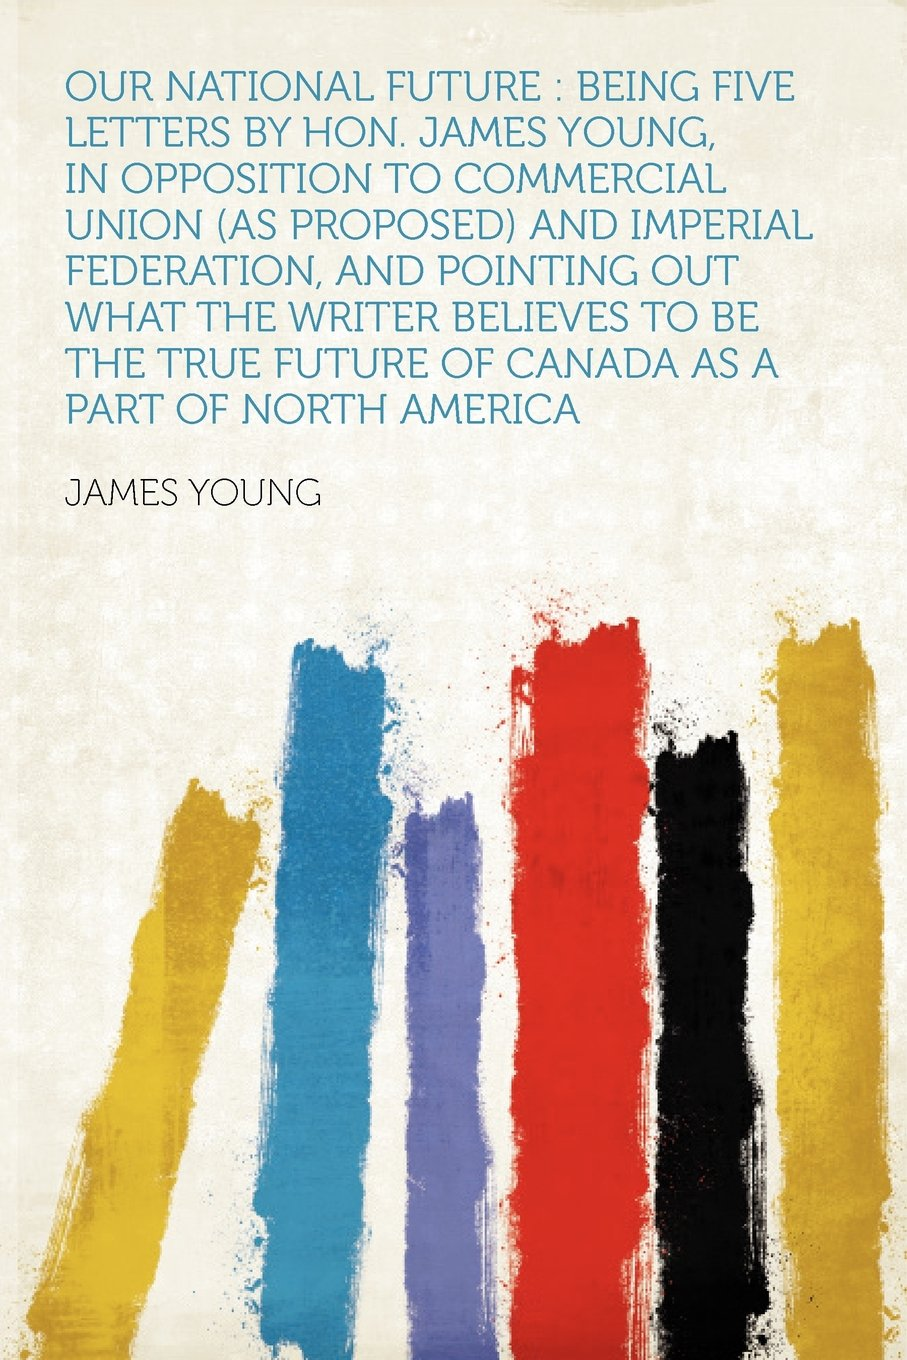 Download Our National Future: Being Five Letters by Hon. James Young, in Opposition to Commercial Union (as Proposed) and Imperial Federation, and Pointing Out ... Future of Canada as a Part of North America PDF